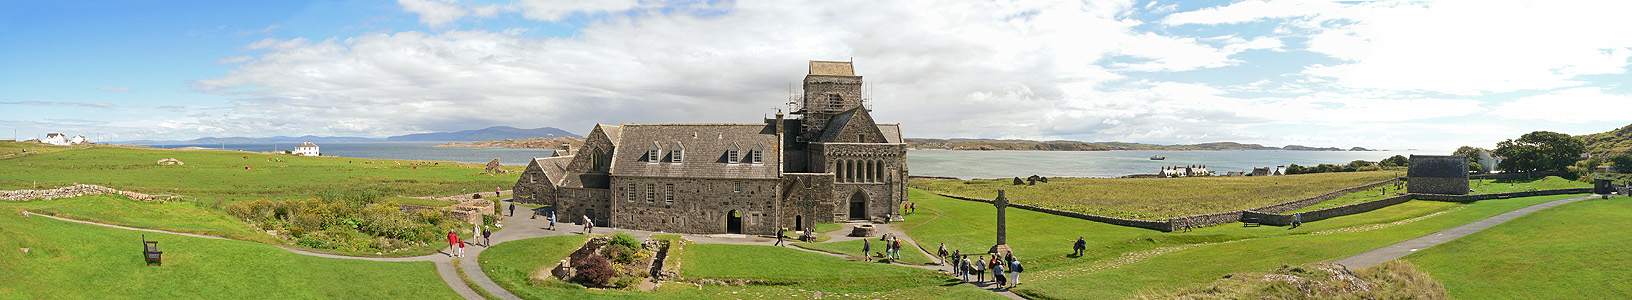 """""""Iona Abbey. Panorama"""" by Oliver-Bonjoch - Own work. Licensed under CC BY-SA 3.0 via Wikimedia Commons"""